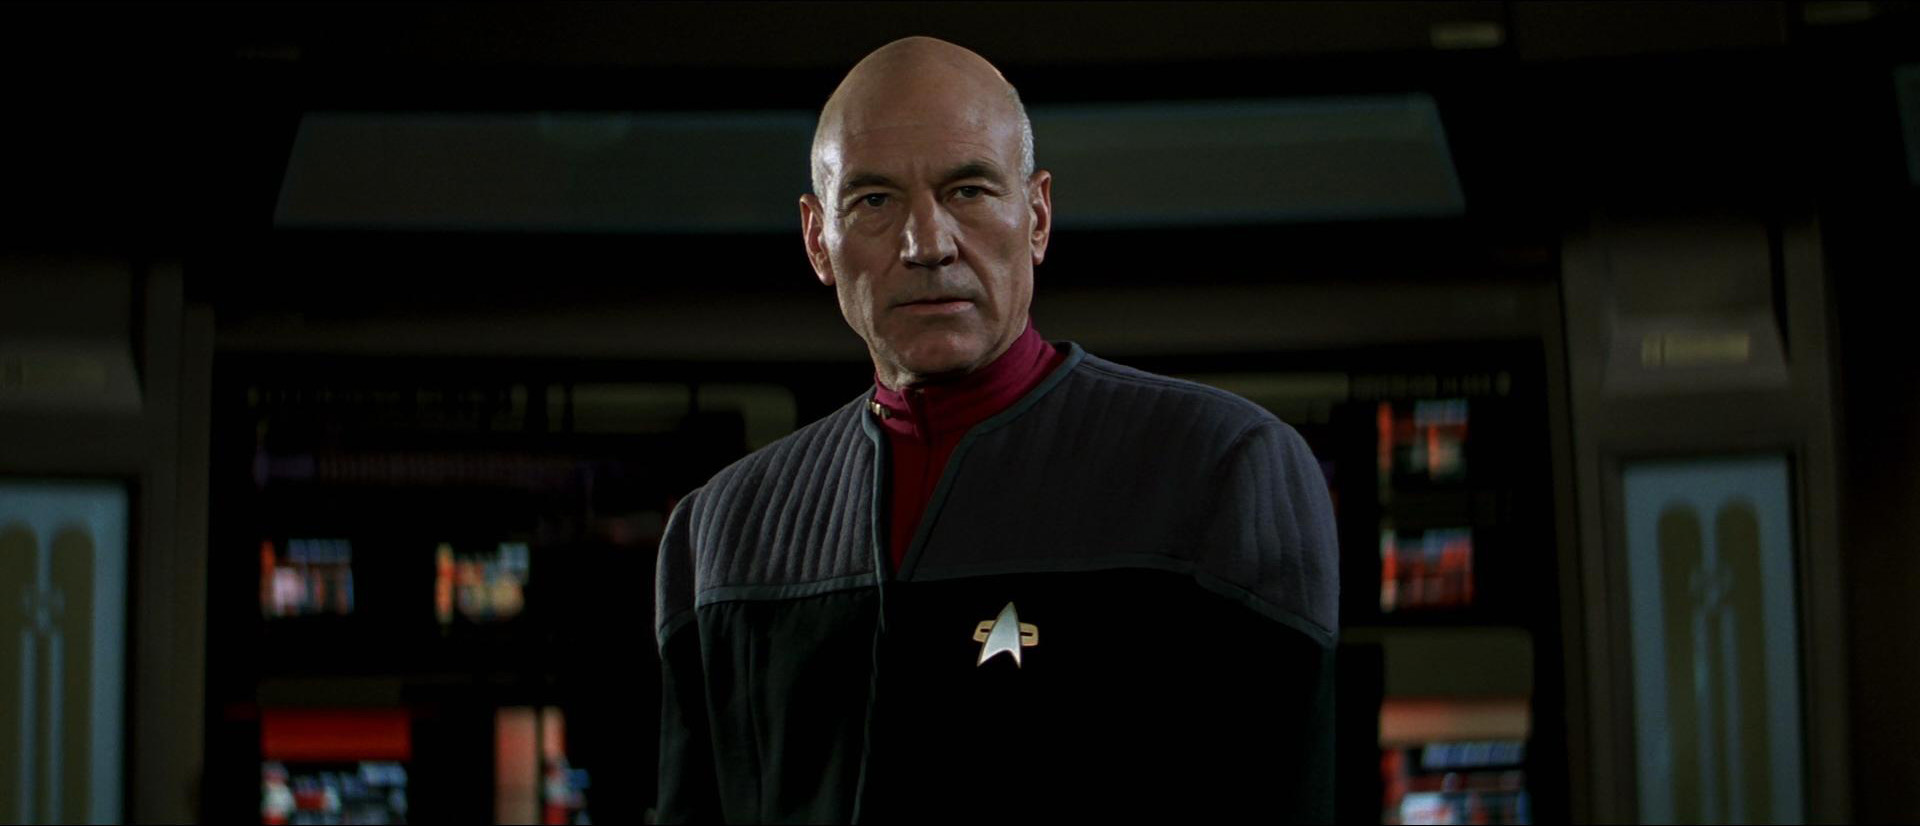 First Contact 20th Anniversary: Why Picard's internal struggle is more relevant than ever